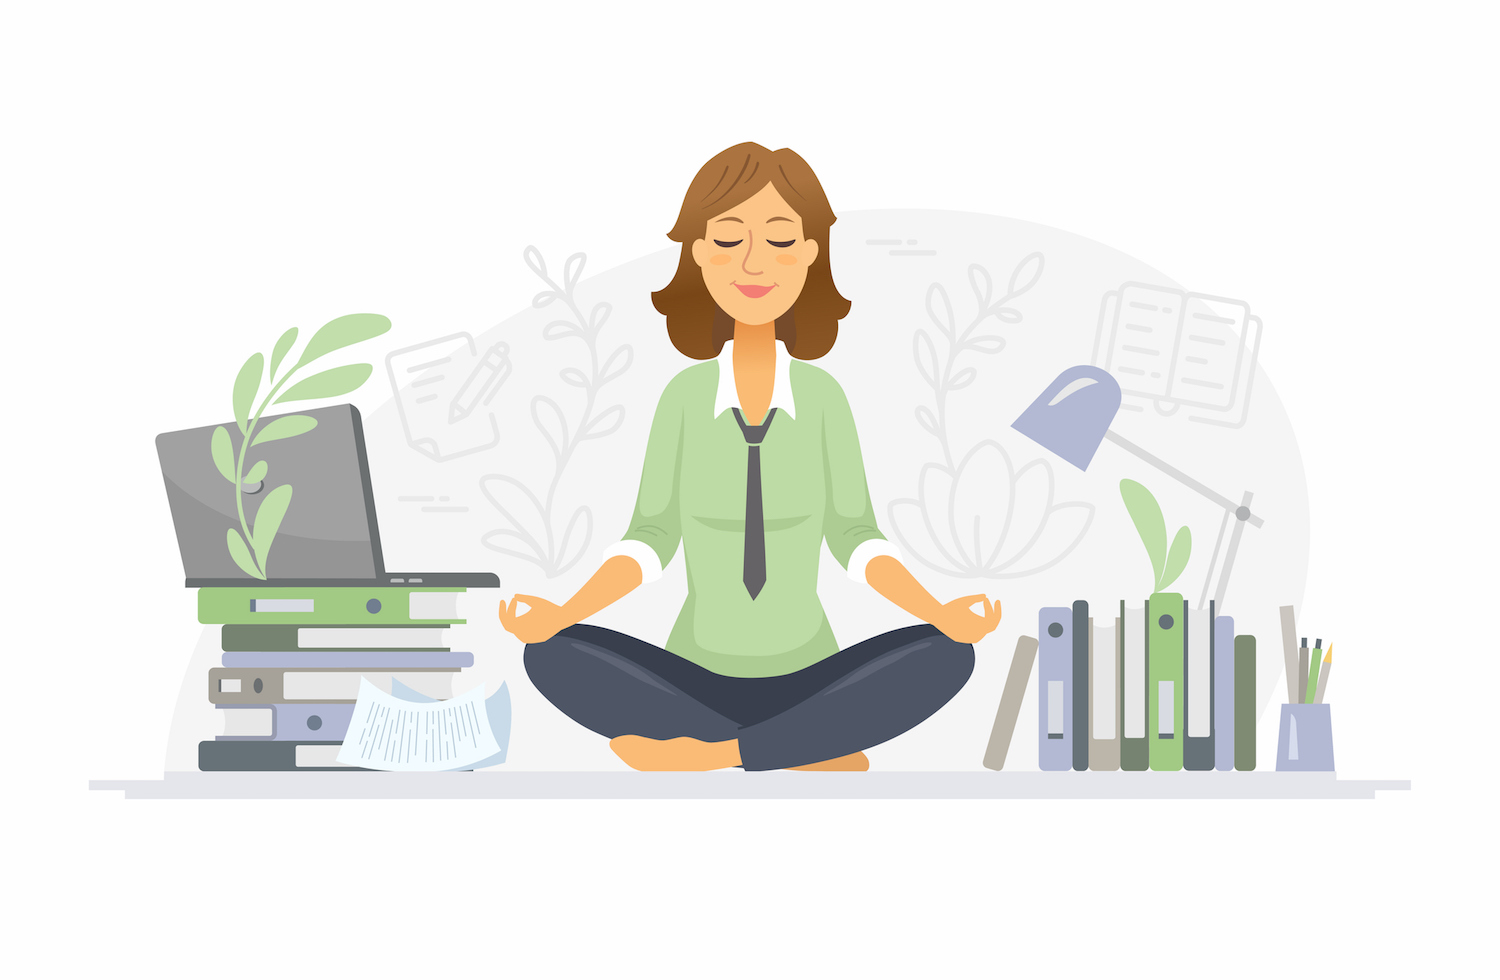 Mindfulness can lead to a happier, healthier and more efficient work environment, whether employees interact with their colleagues in person or over Zoom.